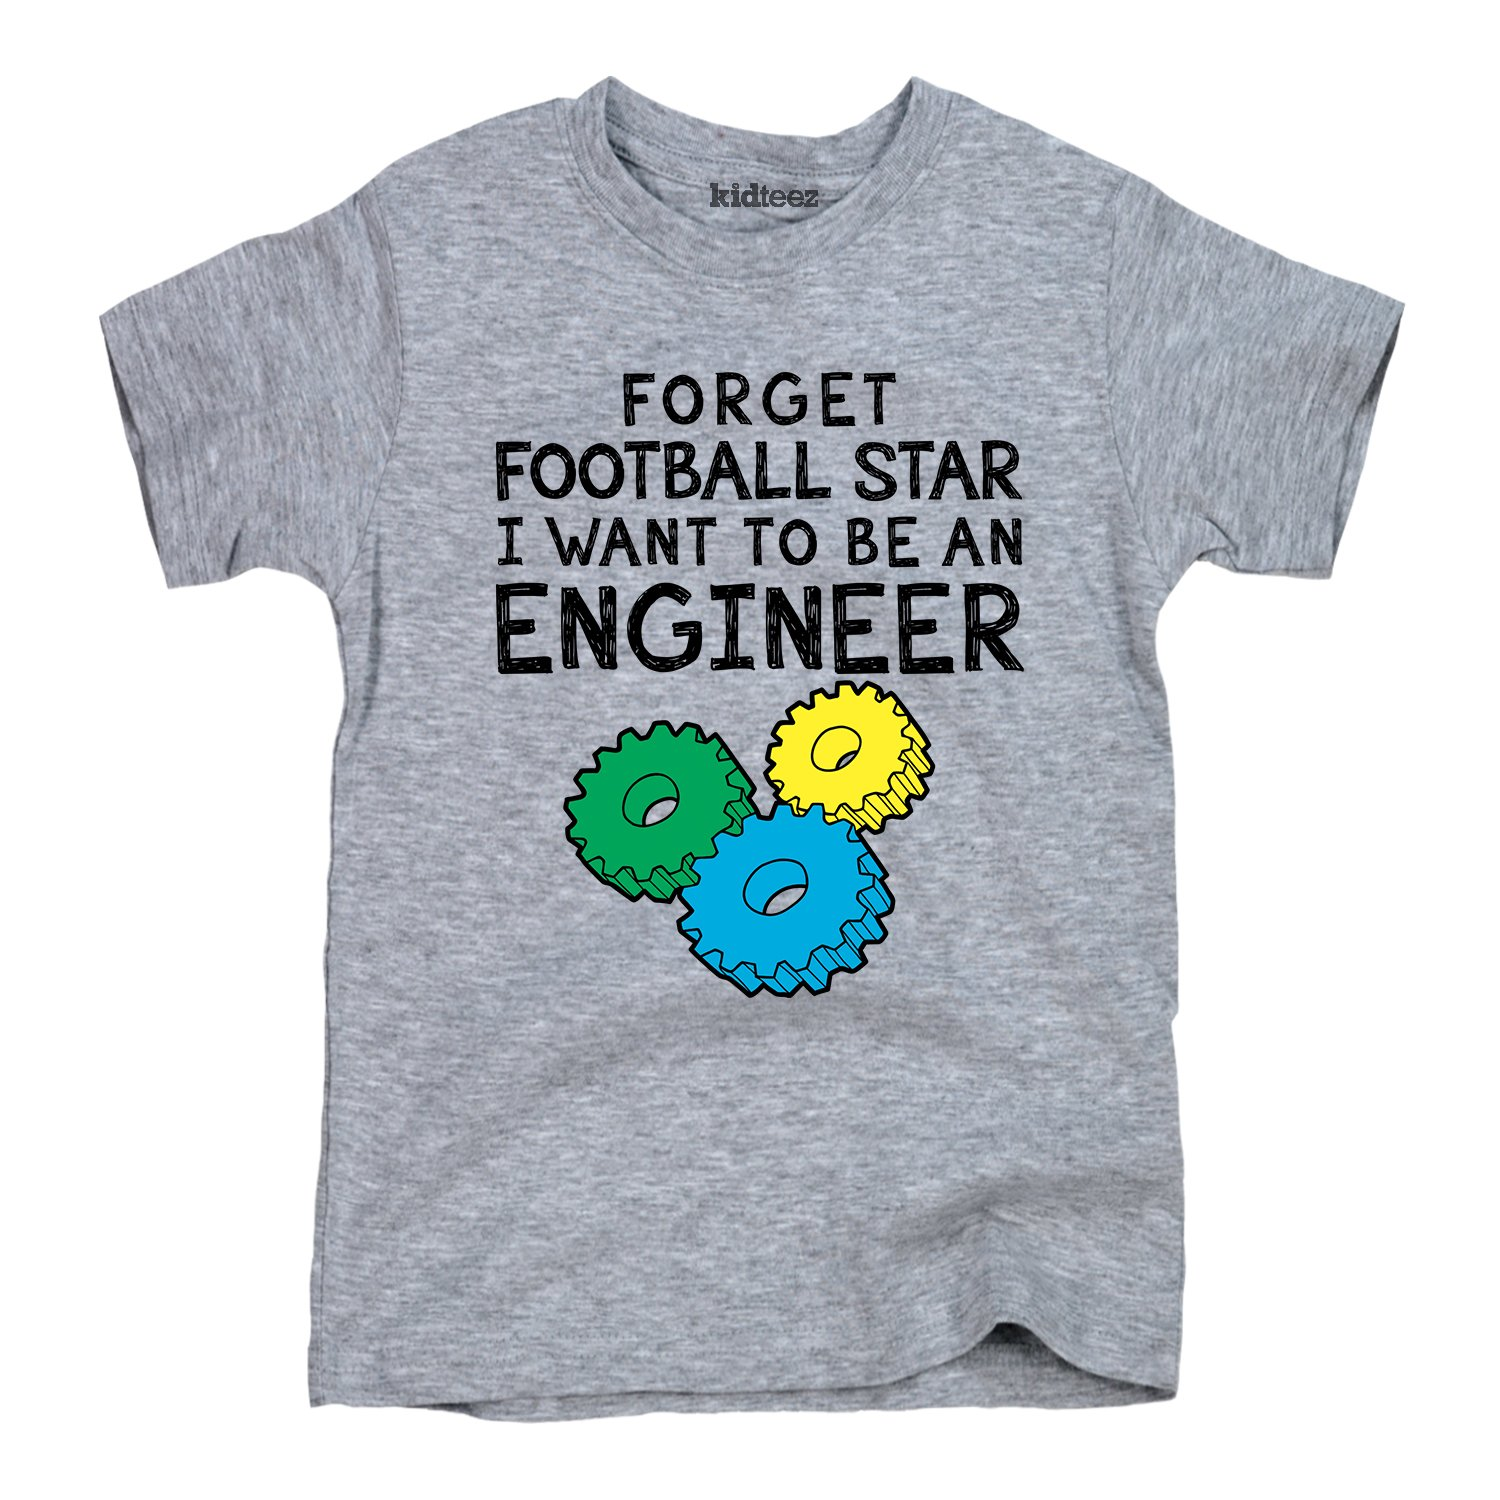 Instant Message Forget Football Star Toddler Short Sleeve Tee Engineer